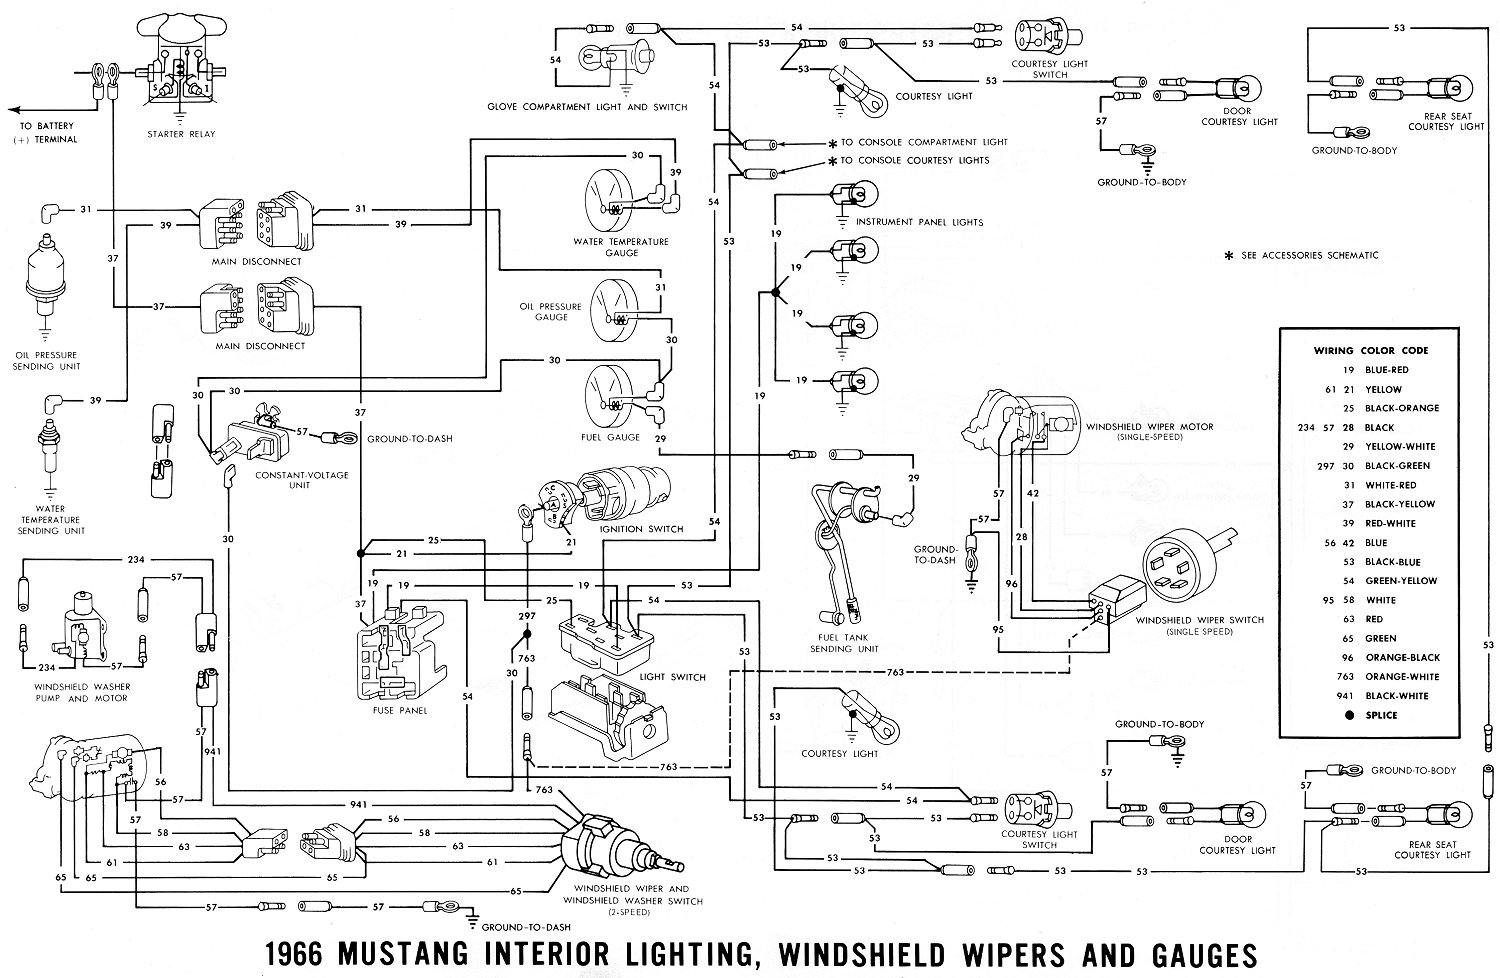 66inter1 1970 mustang wiring diagram pdf 1967 mustang wiring diagram pdf 1967 chevelle wiring diagram pdf at reclaimingppi.co